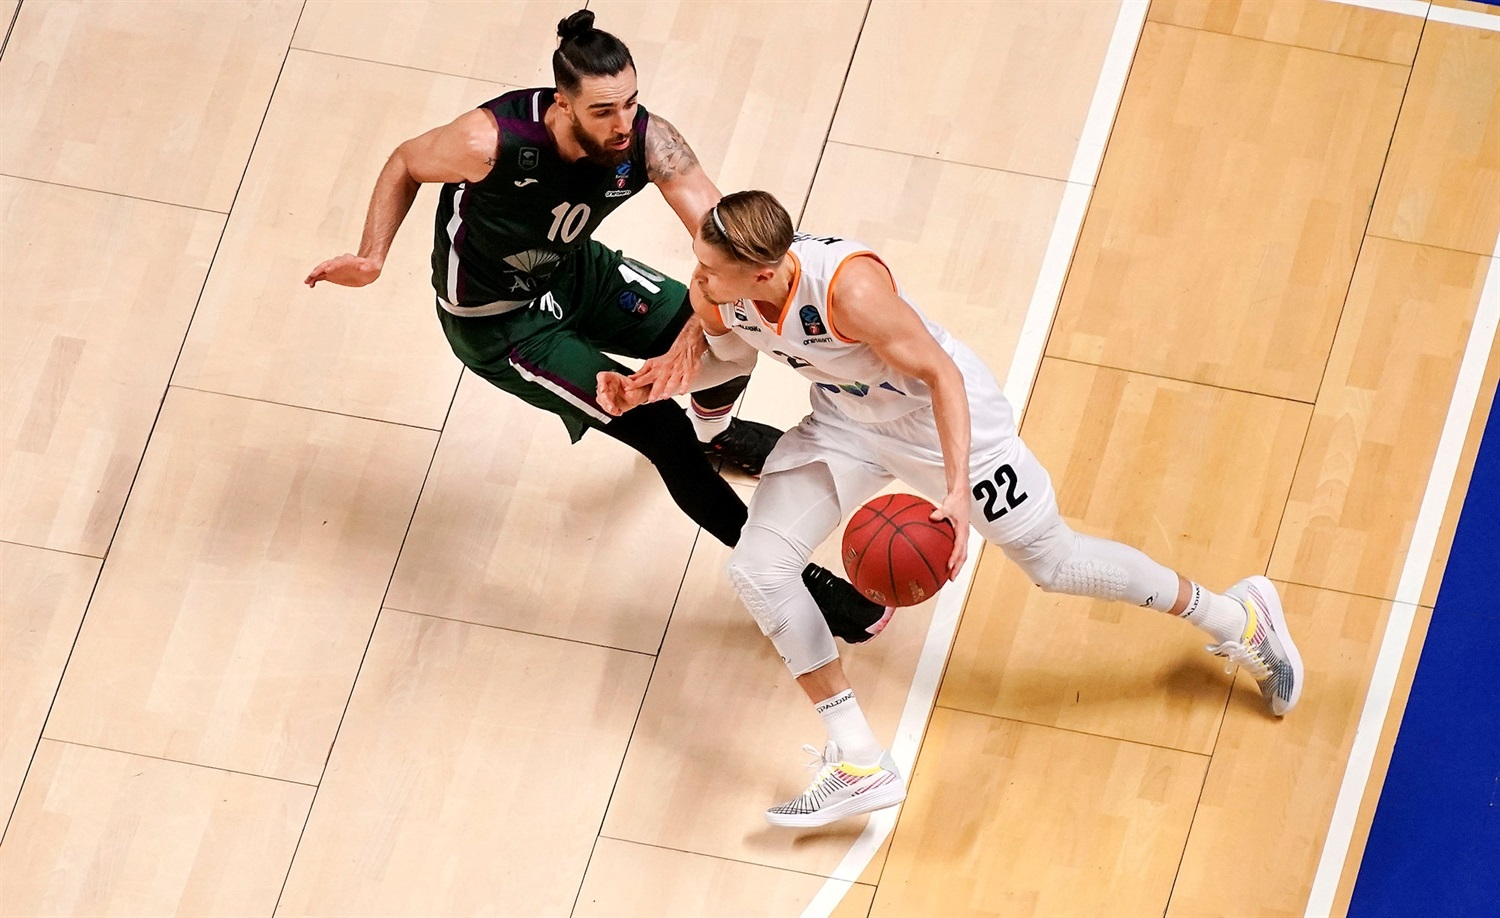 Thomas Klepeisz - ratiopharm Ulm (photo Unicaja - Mariano Pozo) - EC20